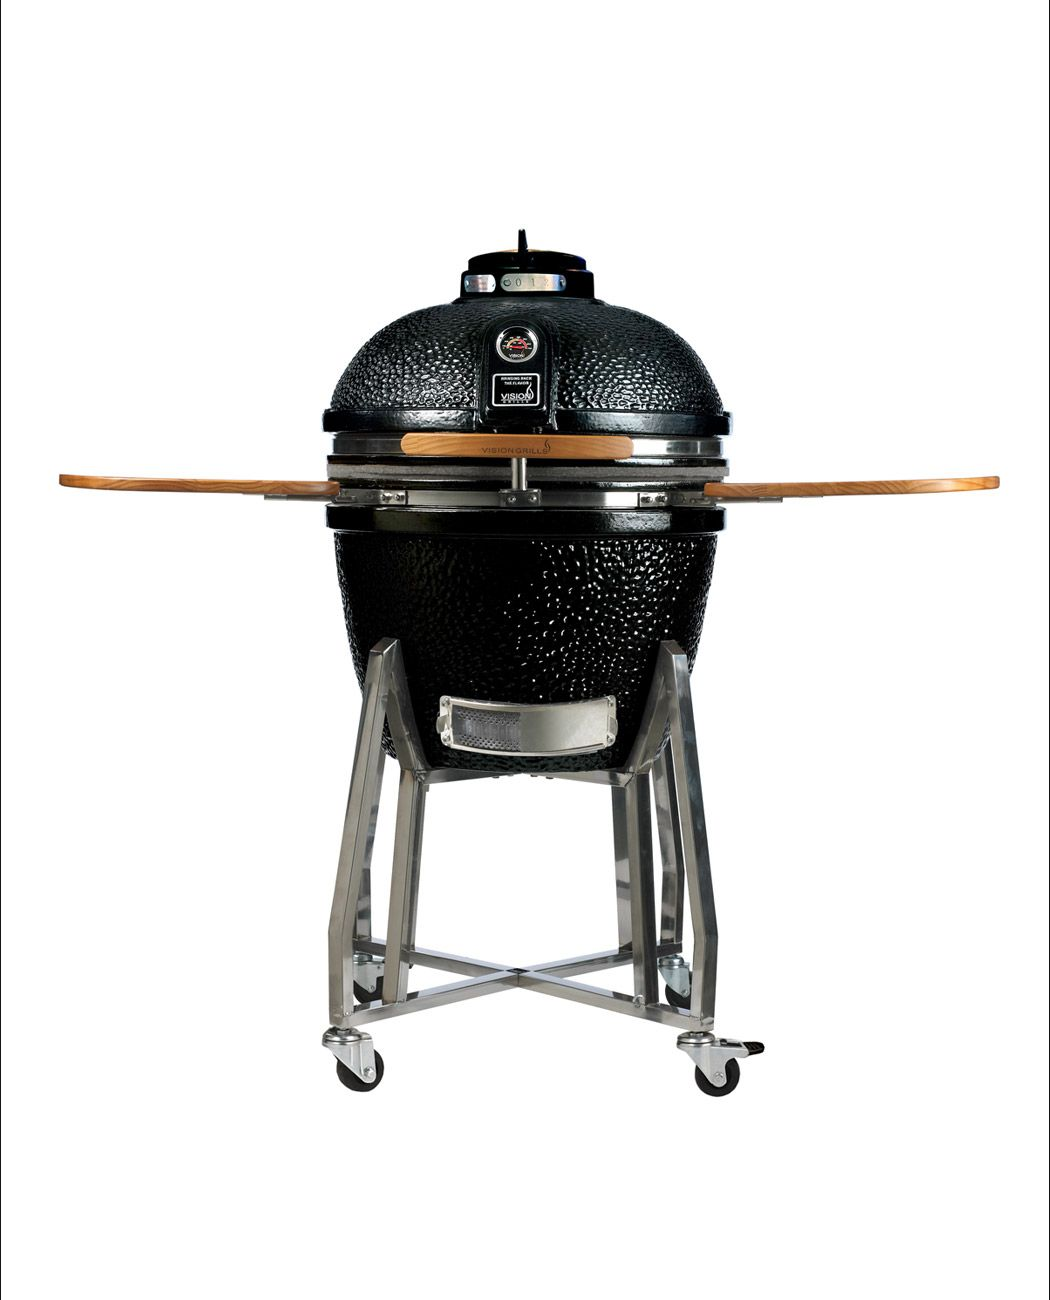 Heavy Duty 1 Series Kamado Grills Vision Grills Ceramic Grill Barbecue Design Kamado Grill